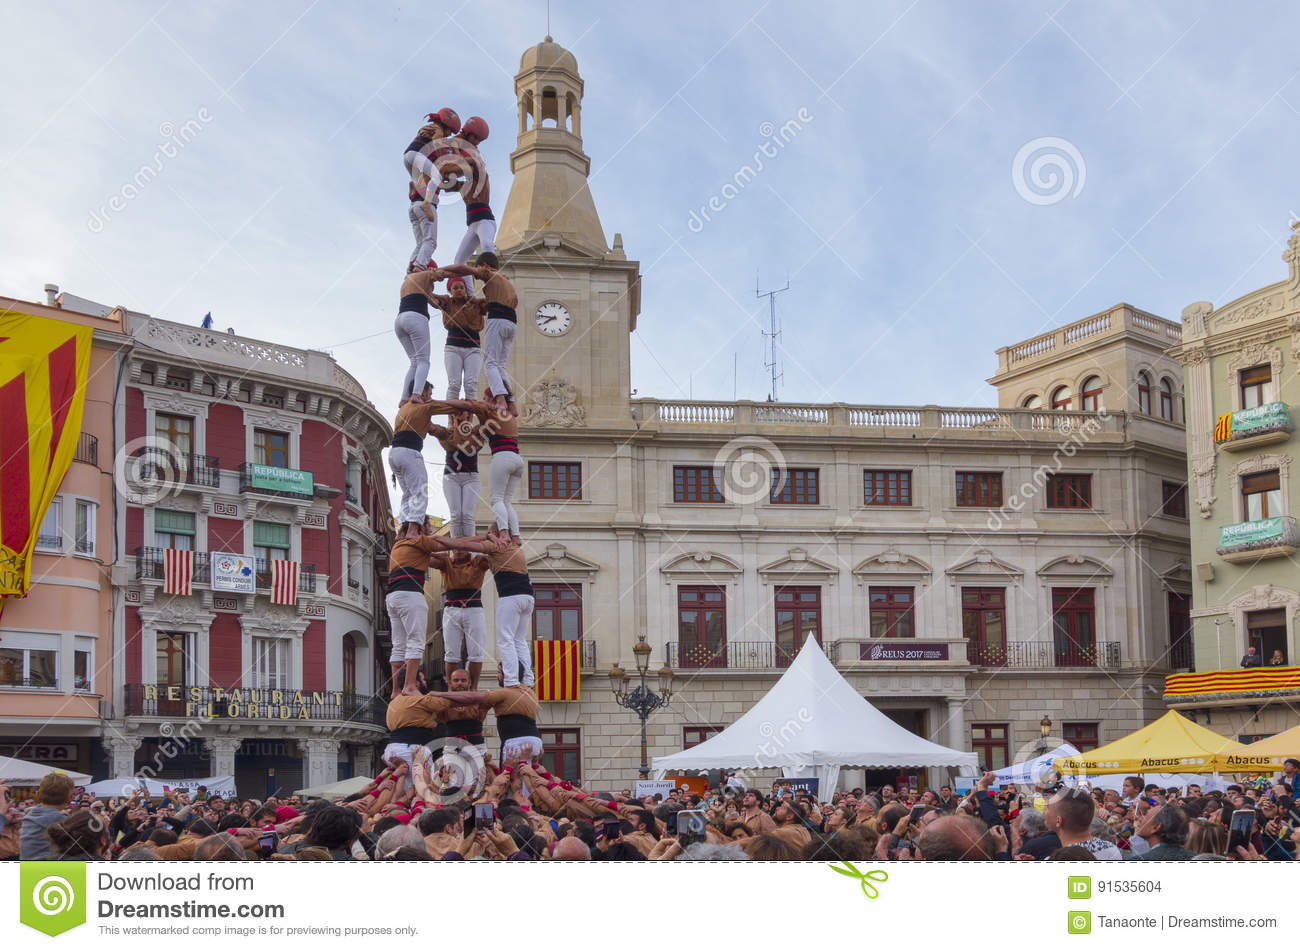 REUS, SPAIN - APRIL 23, 2017: Castells Performance.